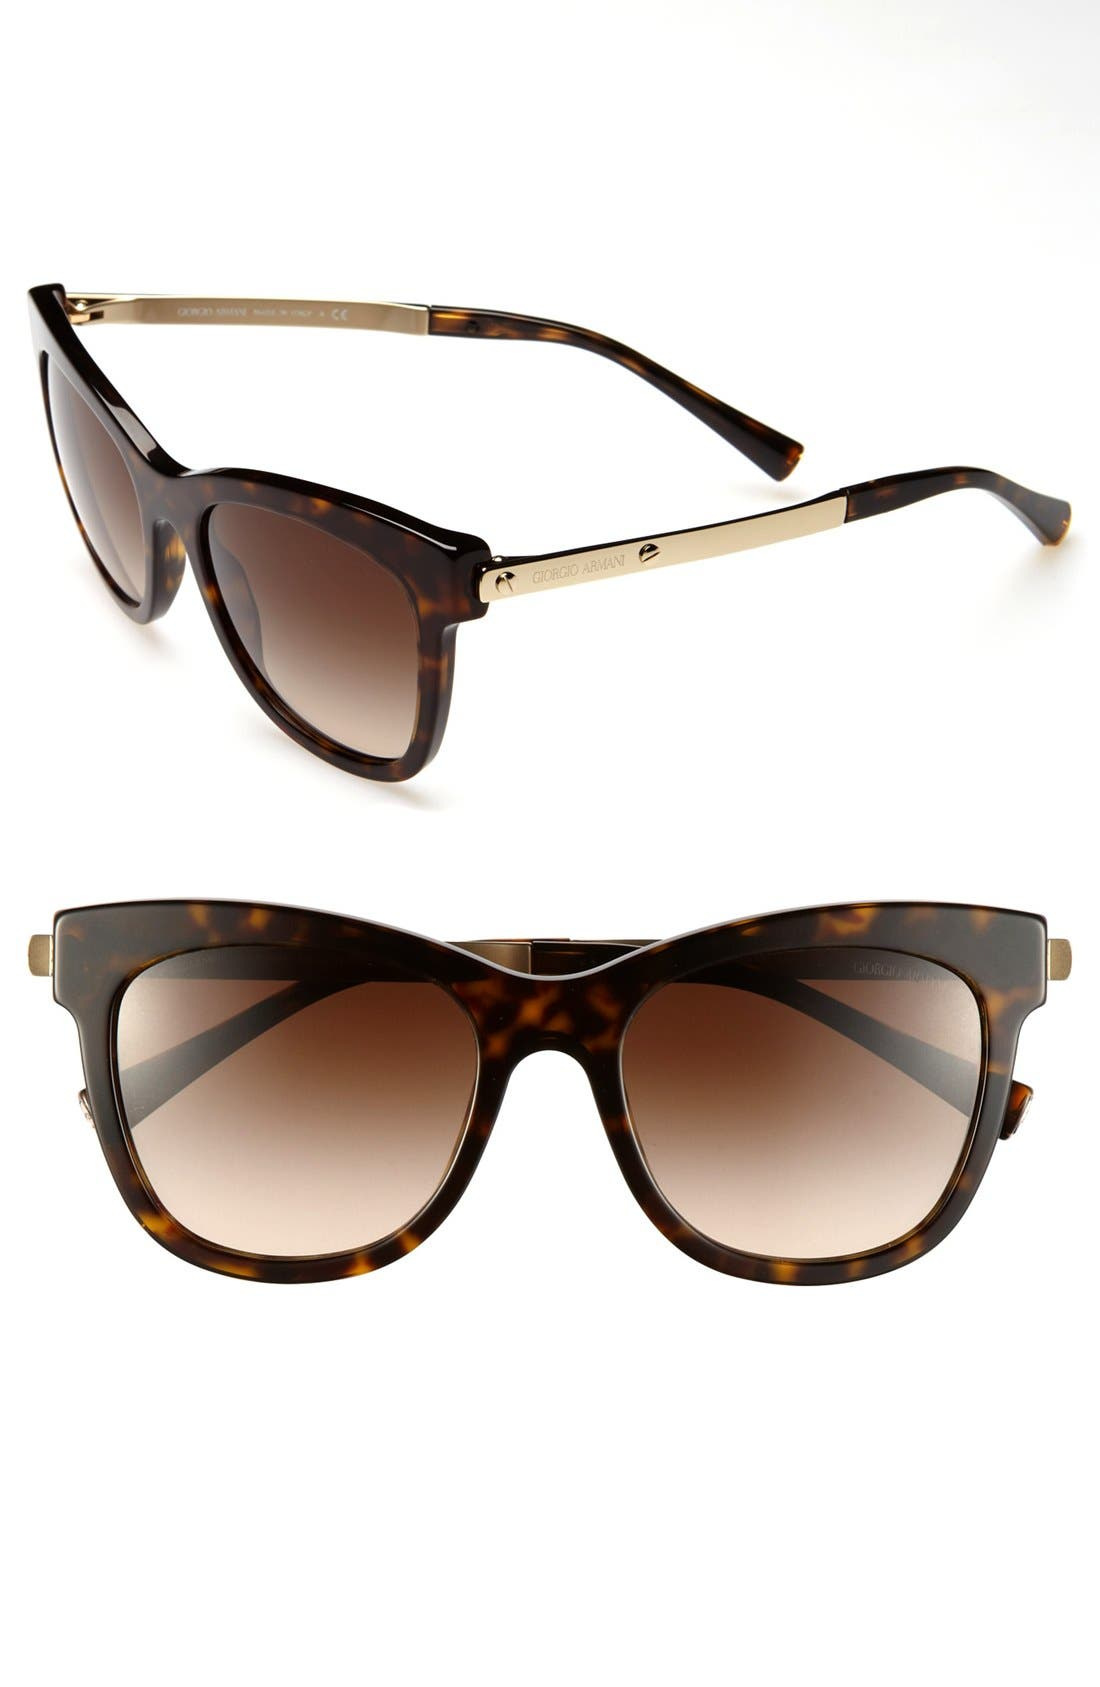 Main Image - Giorgio Armani 54mm Sunglasses